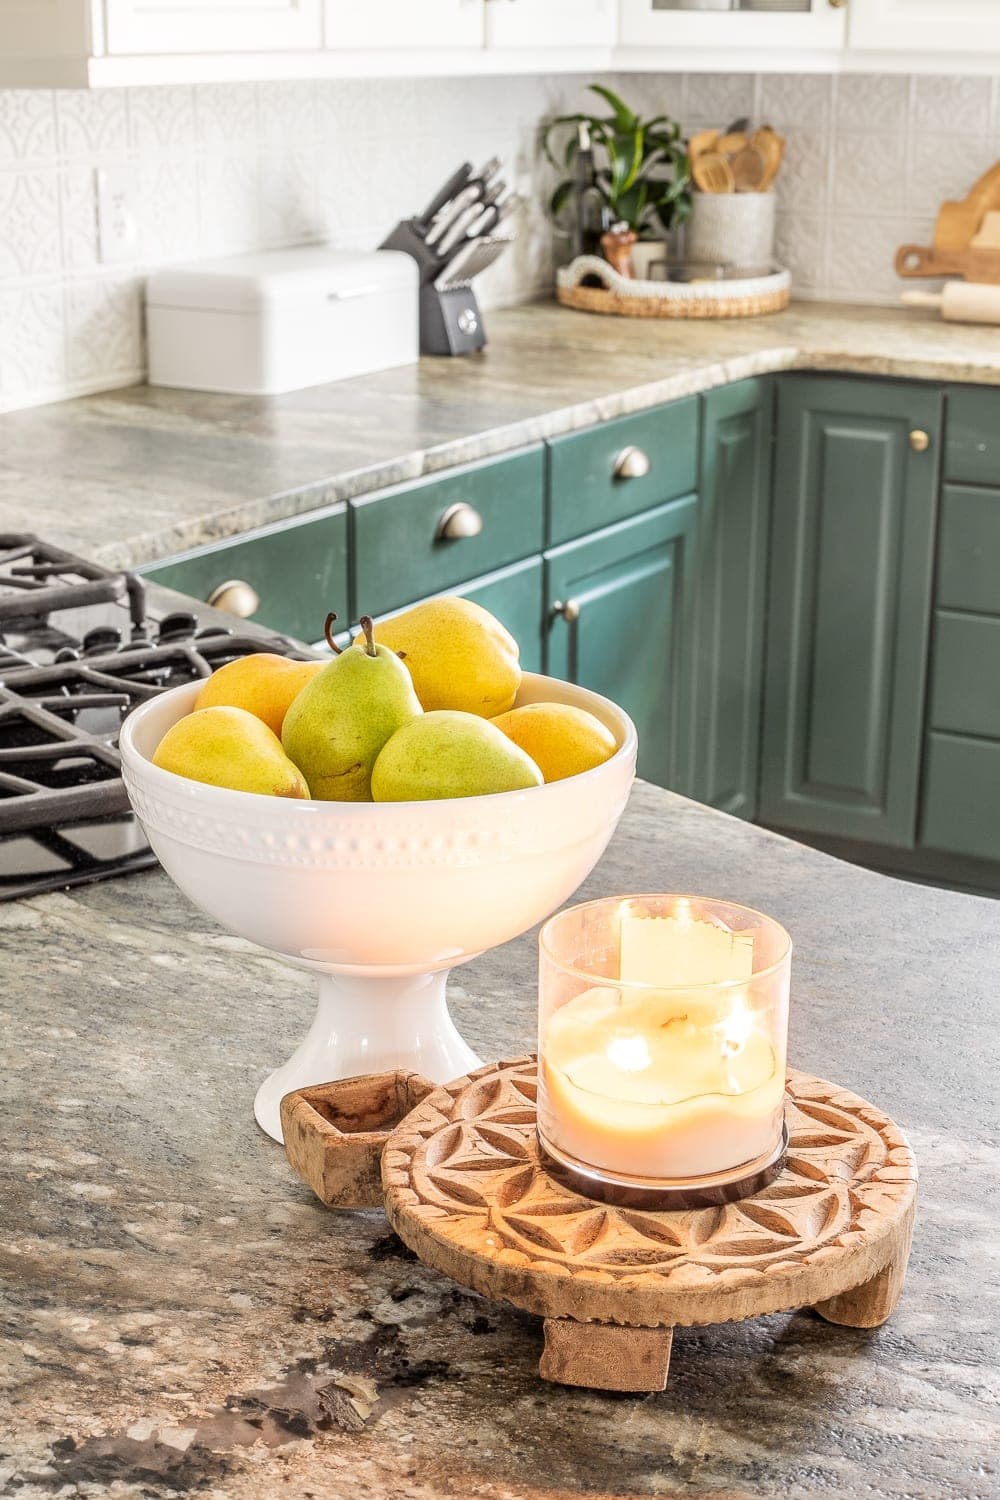 candle and fruit bowl for kitchen counter decor